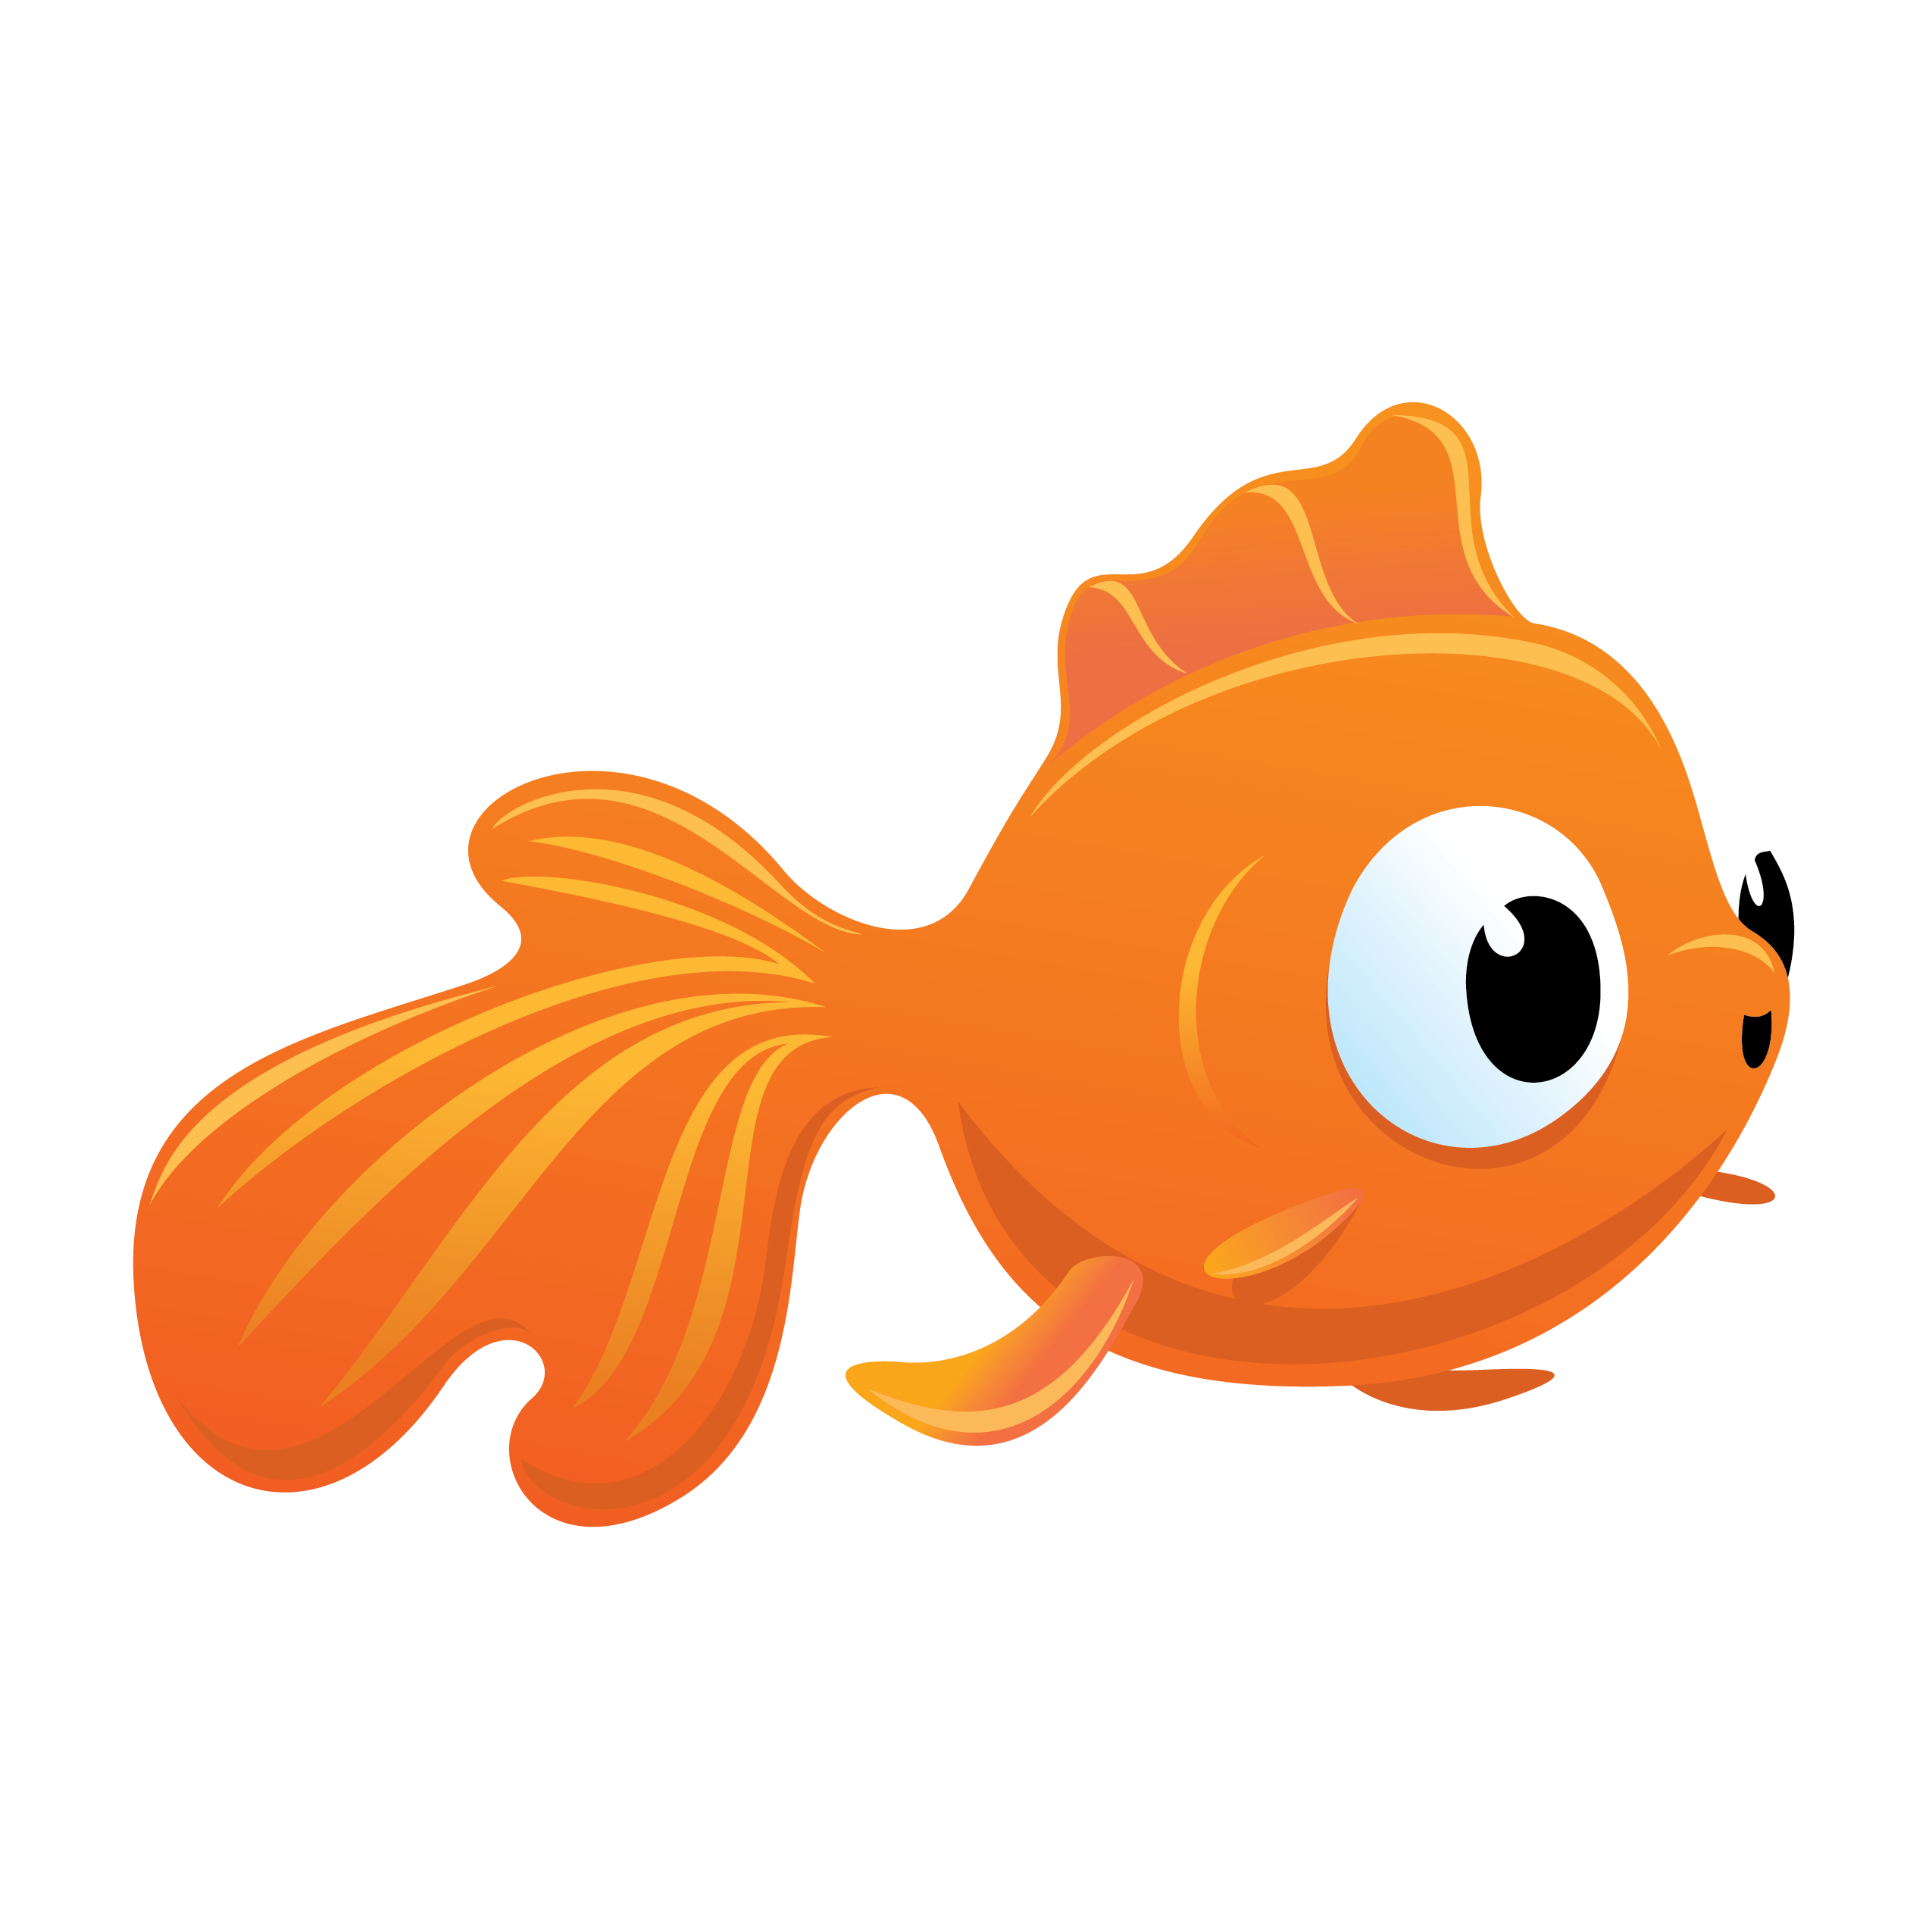 Simple fish gold fish cracker clipart graphic black and white 28+ Collection of Goldfish Clipart Png | High quality, free cliparts ... graphic black and white